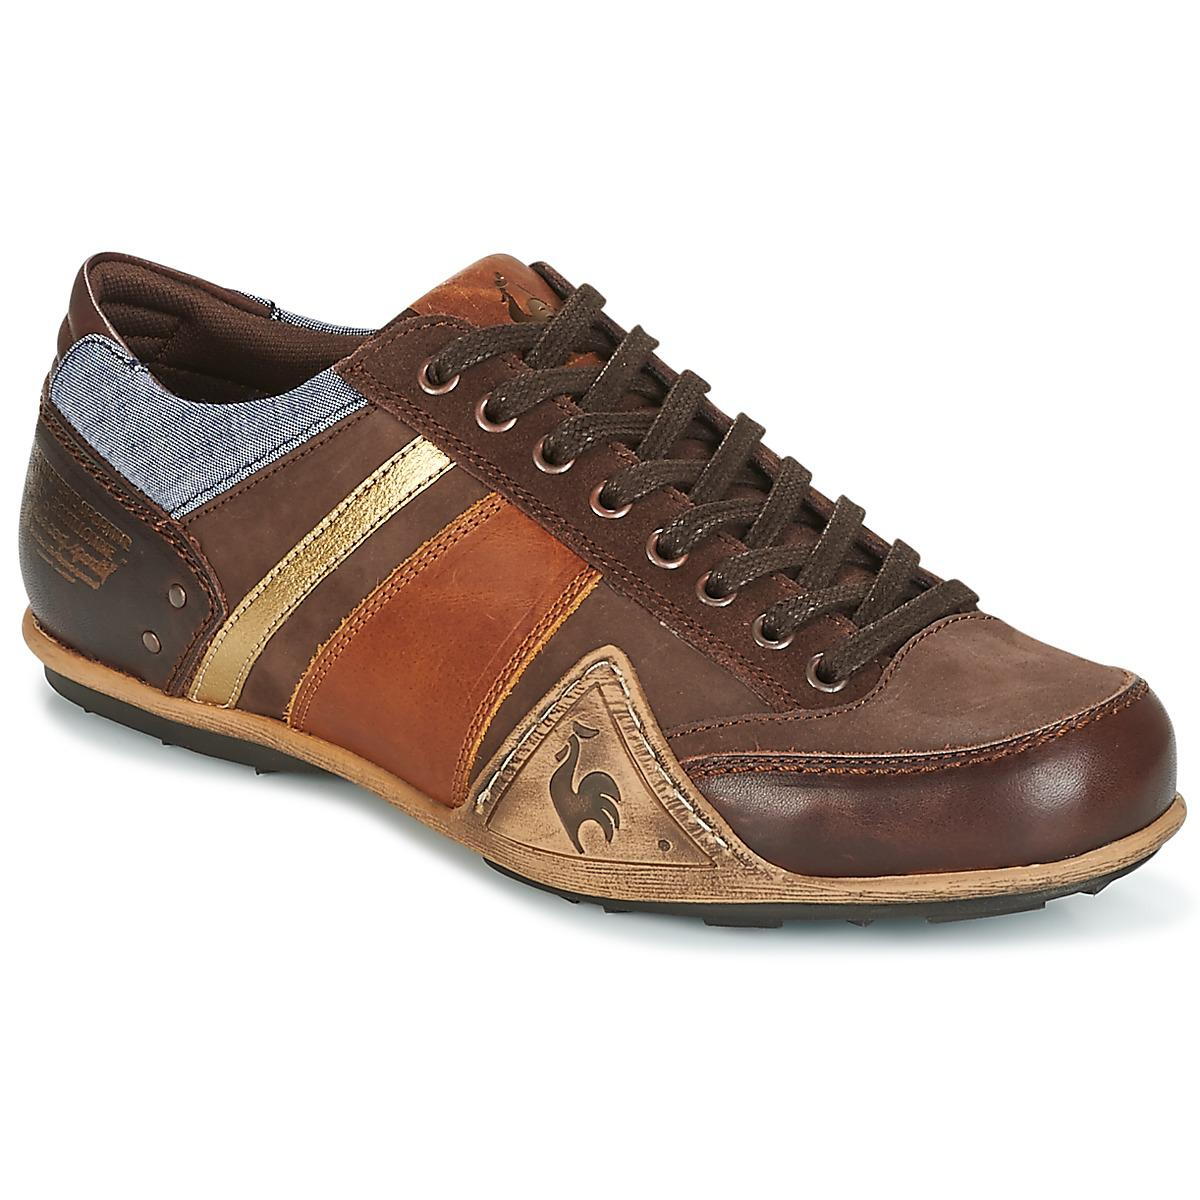 Burberry Shoes New Collection